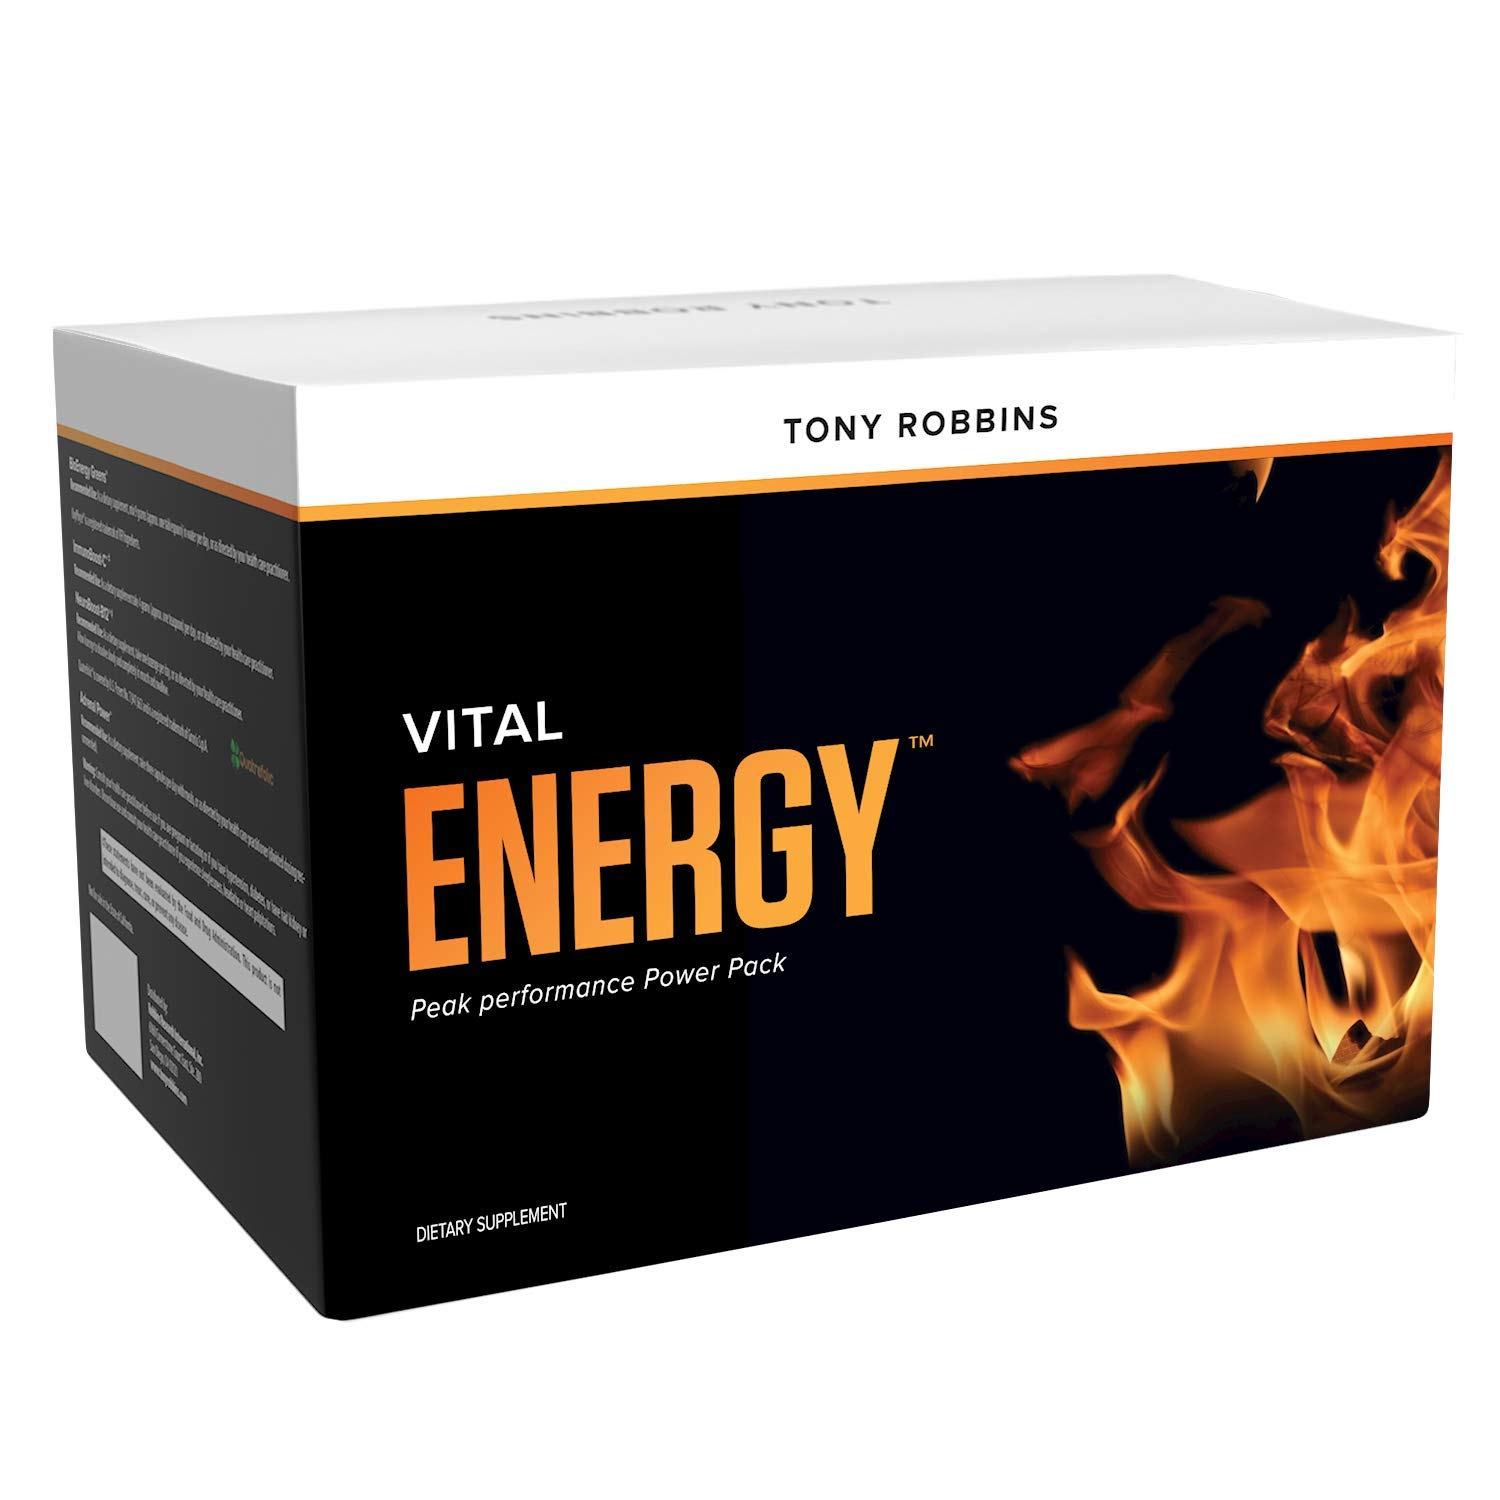 Tony Robbins Vital Energy – Unlimited Power – Peak Performance Power Pack 30 Day Supply